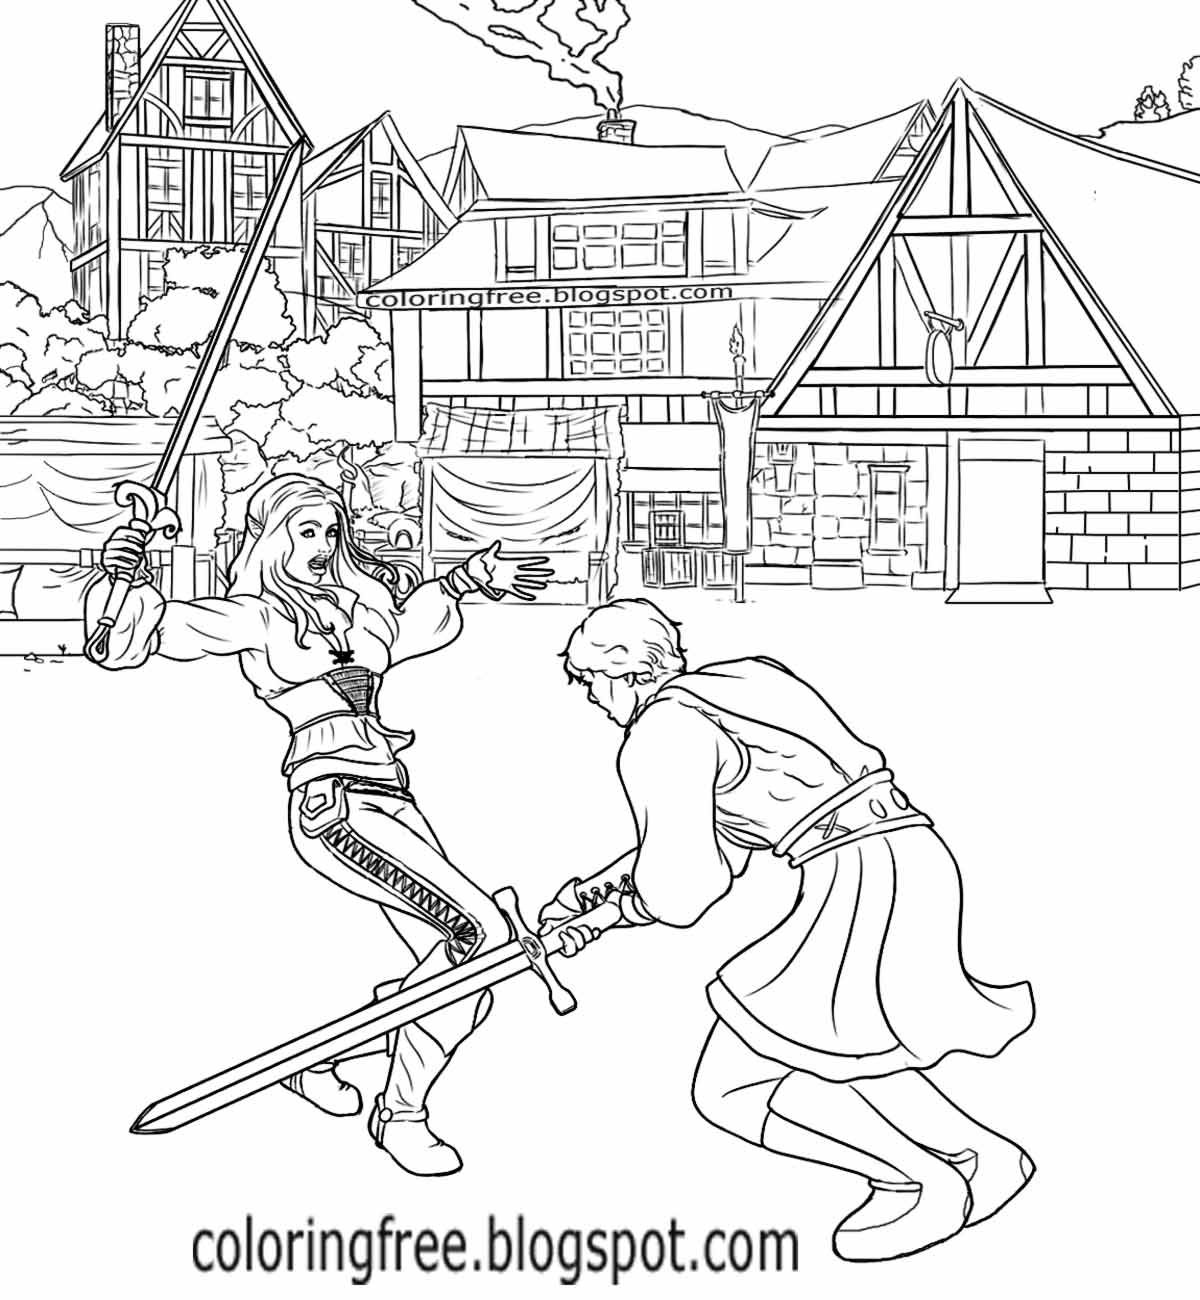 Free Coloring Pages Printable Pictures To Color Kids Drawing Ideas Dark Ages Me Val Coloring